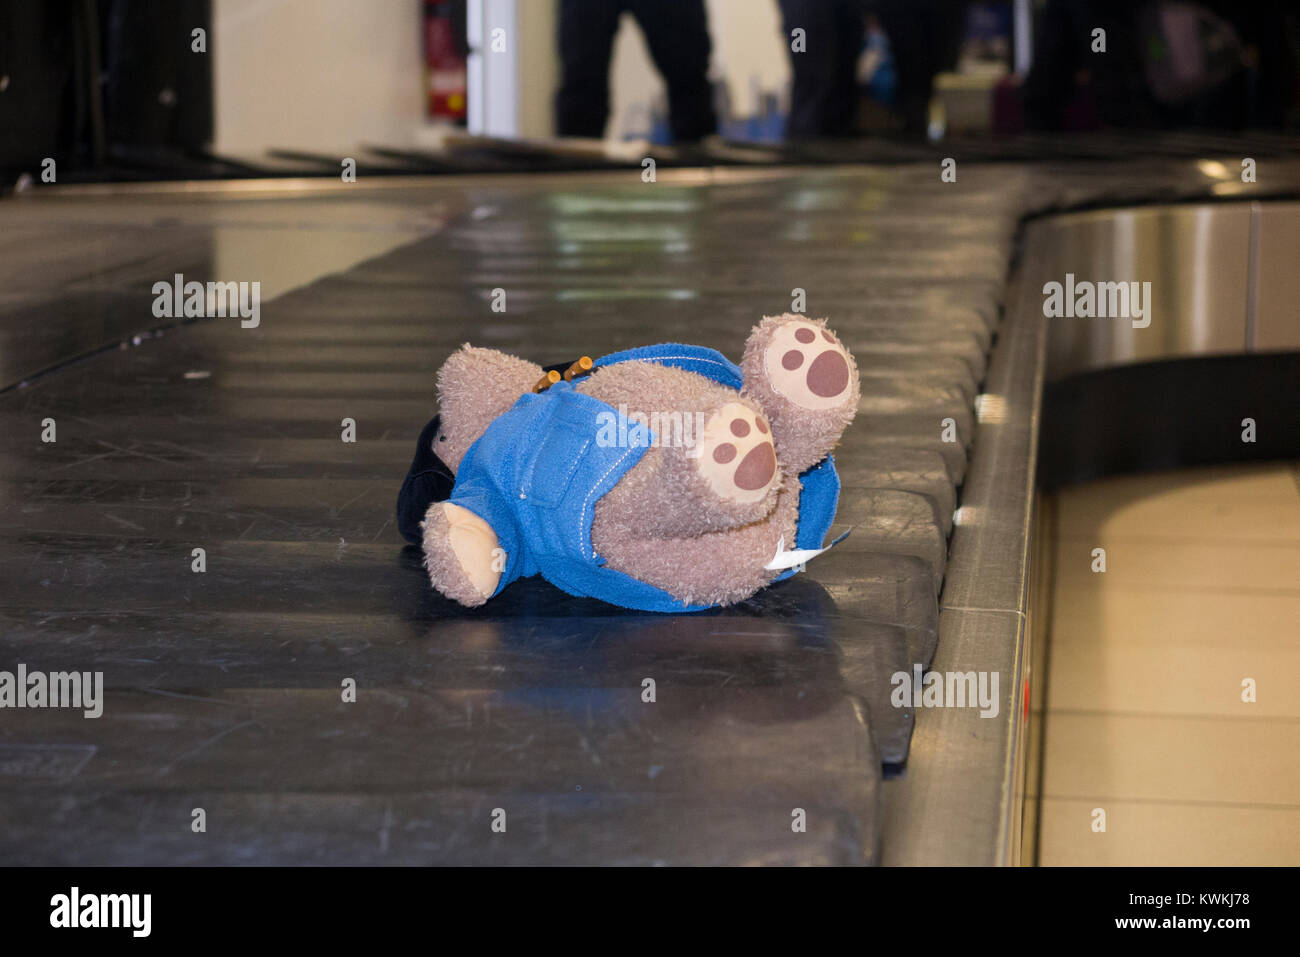 Child's soft toy, a Paddington Bear – possibly lost –  riding luggage claim / baggage reclaim carousel conveyor Stock Photo